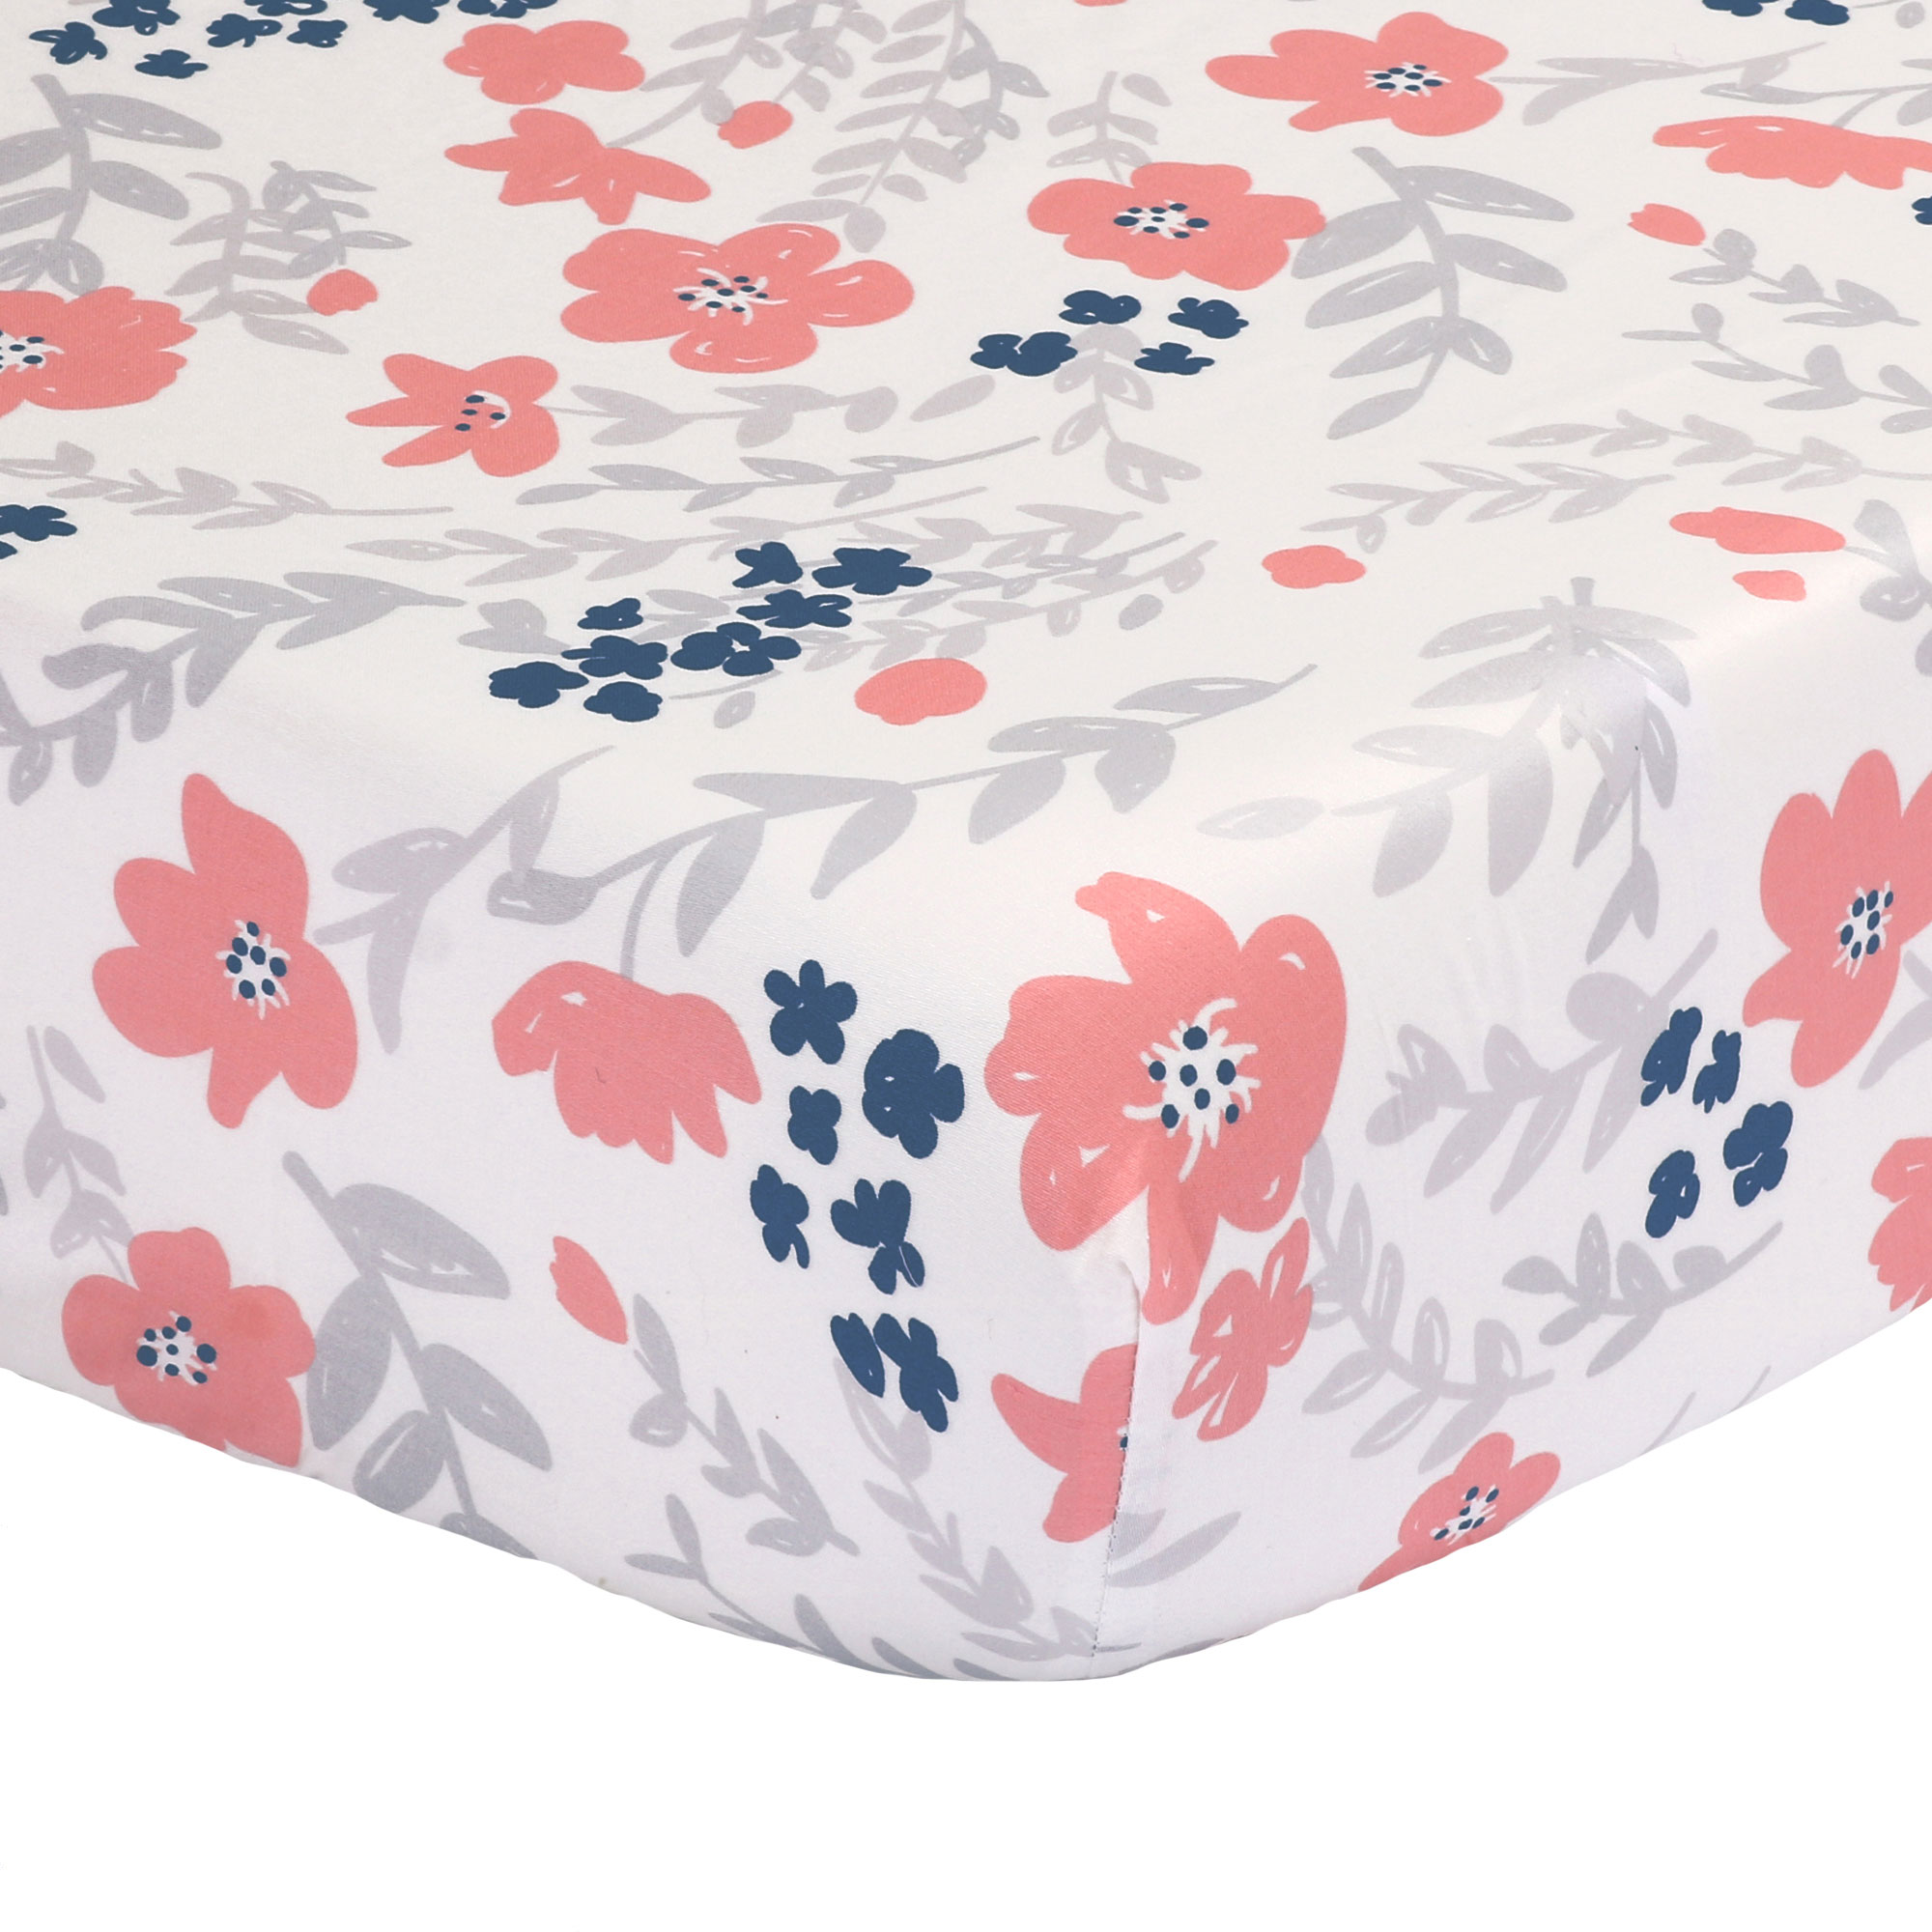 The Peanut Shell Baby Crib Fitted Sheet - Coral Pink, Navy Blue and Grey Floral Print - 100% Cotton Sateen, Fits Standard 52 by 28 Inch Mattress